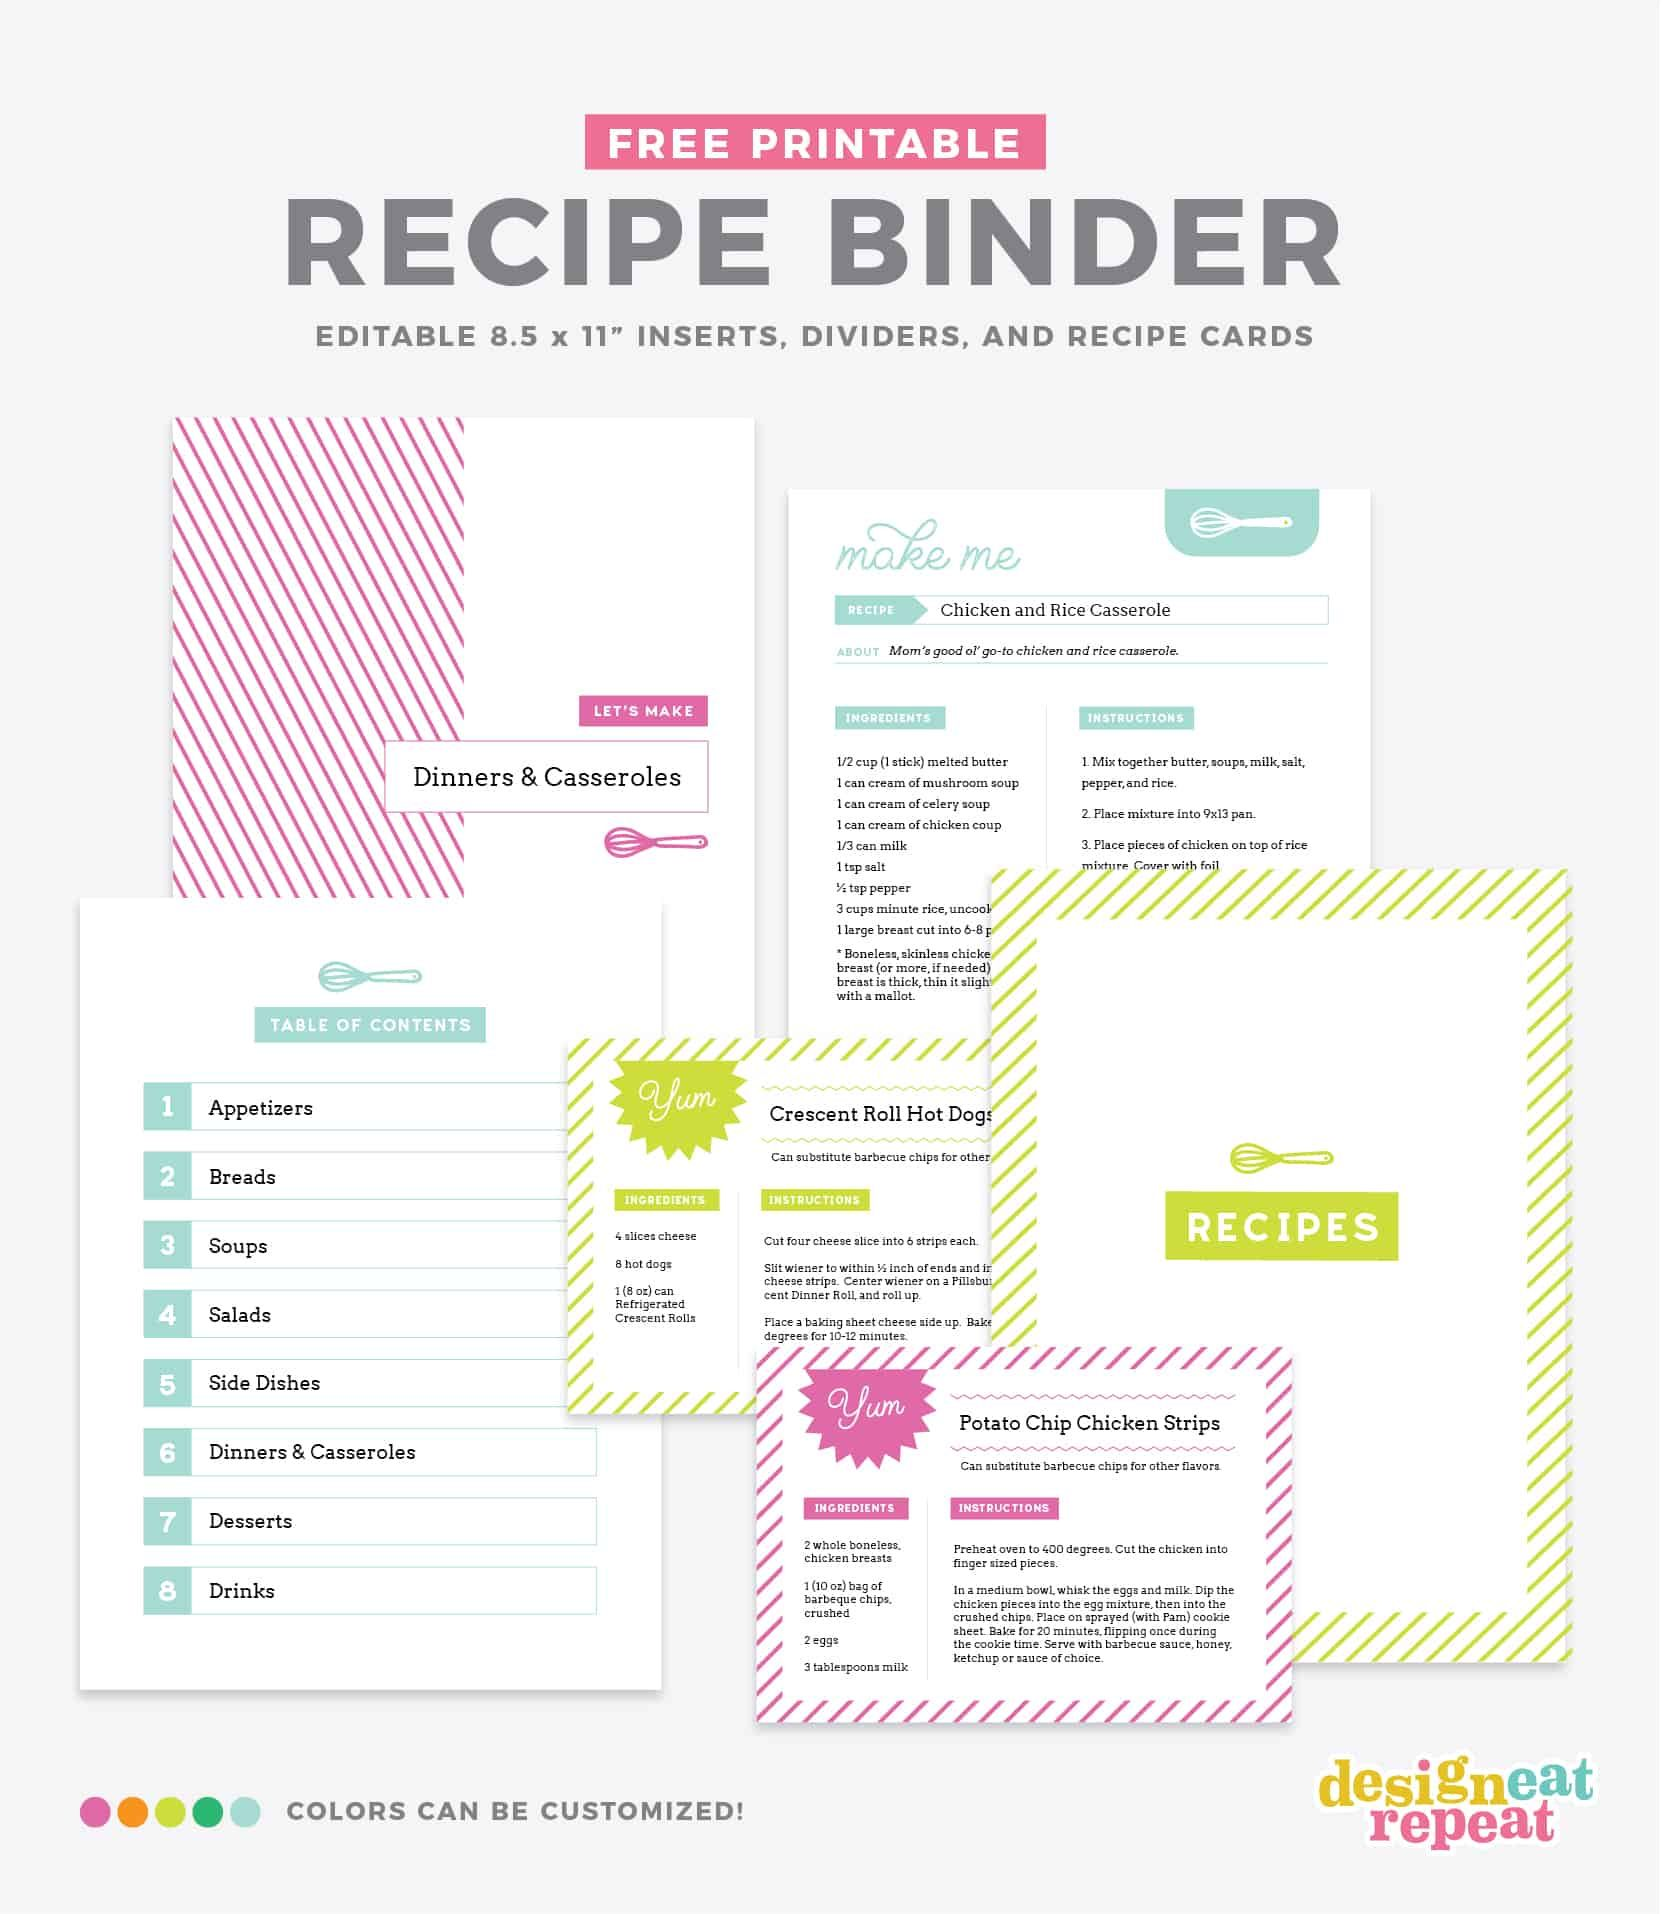 Printable Recipe Pages Nice And Simple Different Colors